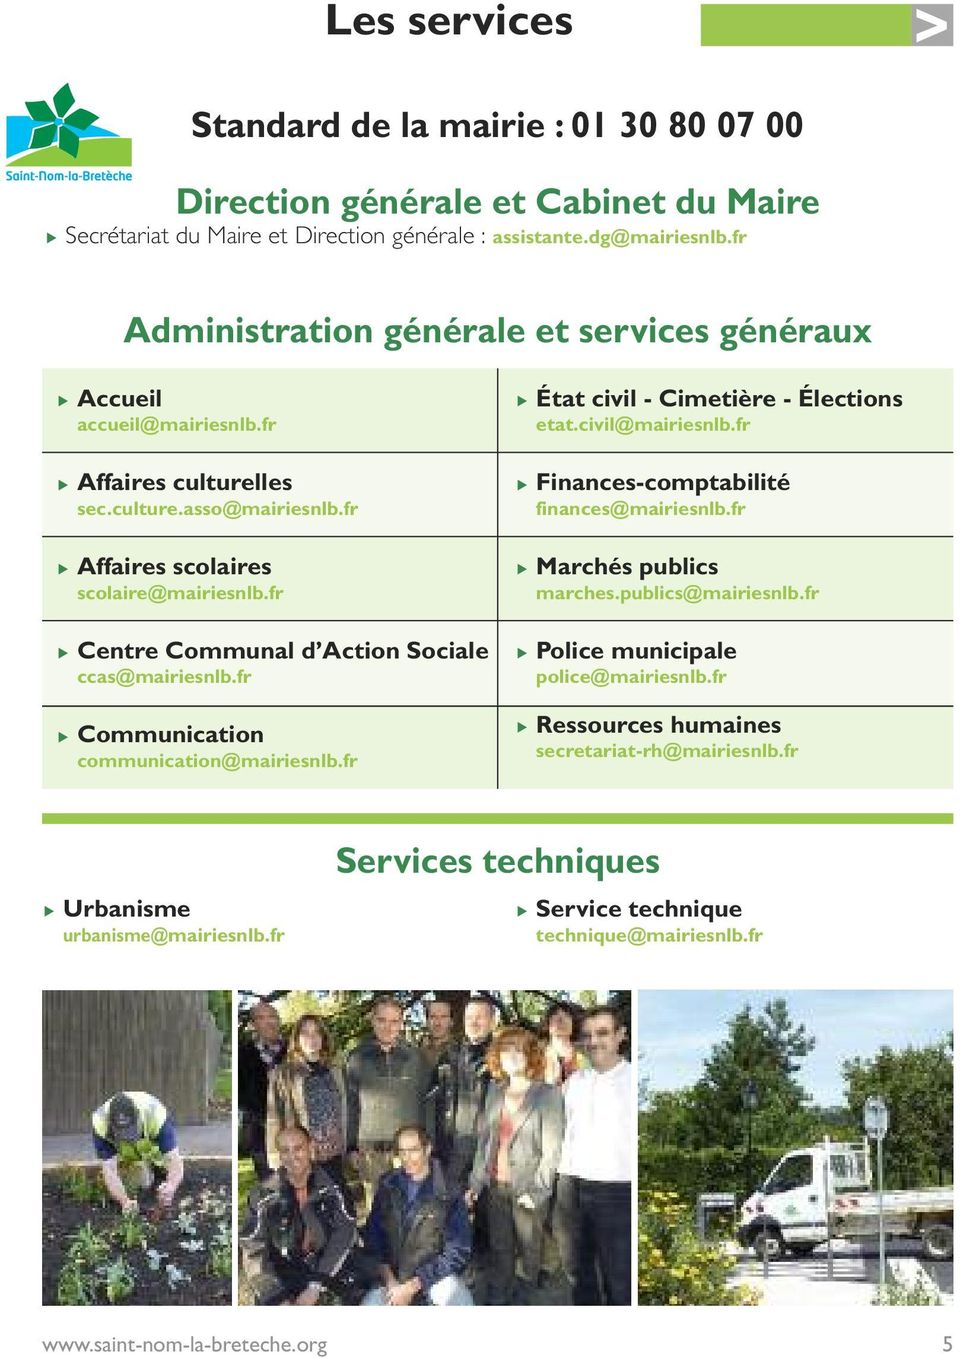 fr Centre Communal d Action Sociale ccas@mairiesnlb.fr Communication communication@mairiesnlb.fr État civil - Cimetière - Élections etat.civil@mairiesnlb.fr Finances-comptabilité finances@mairiesnlb.